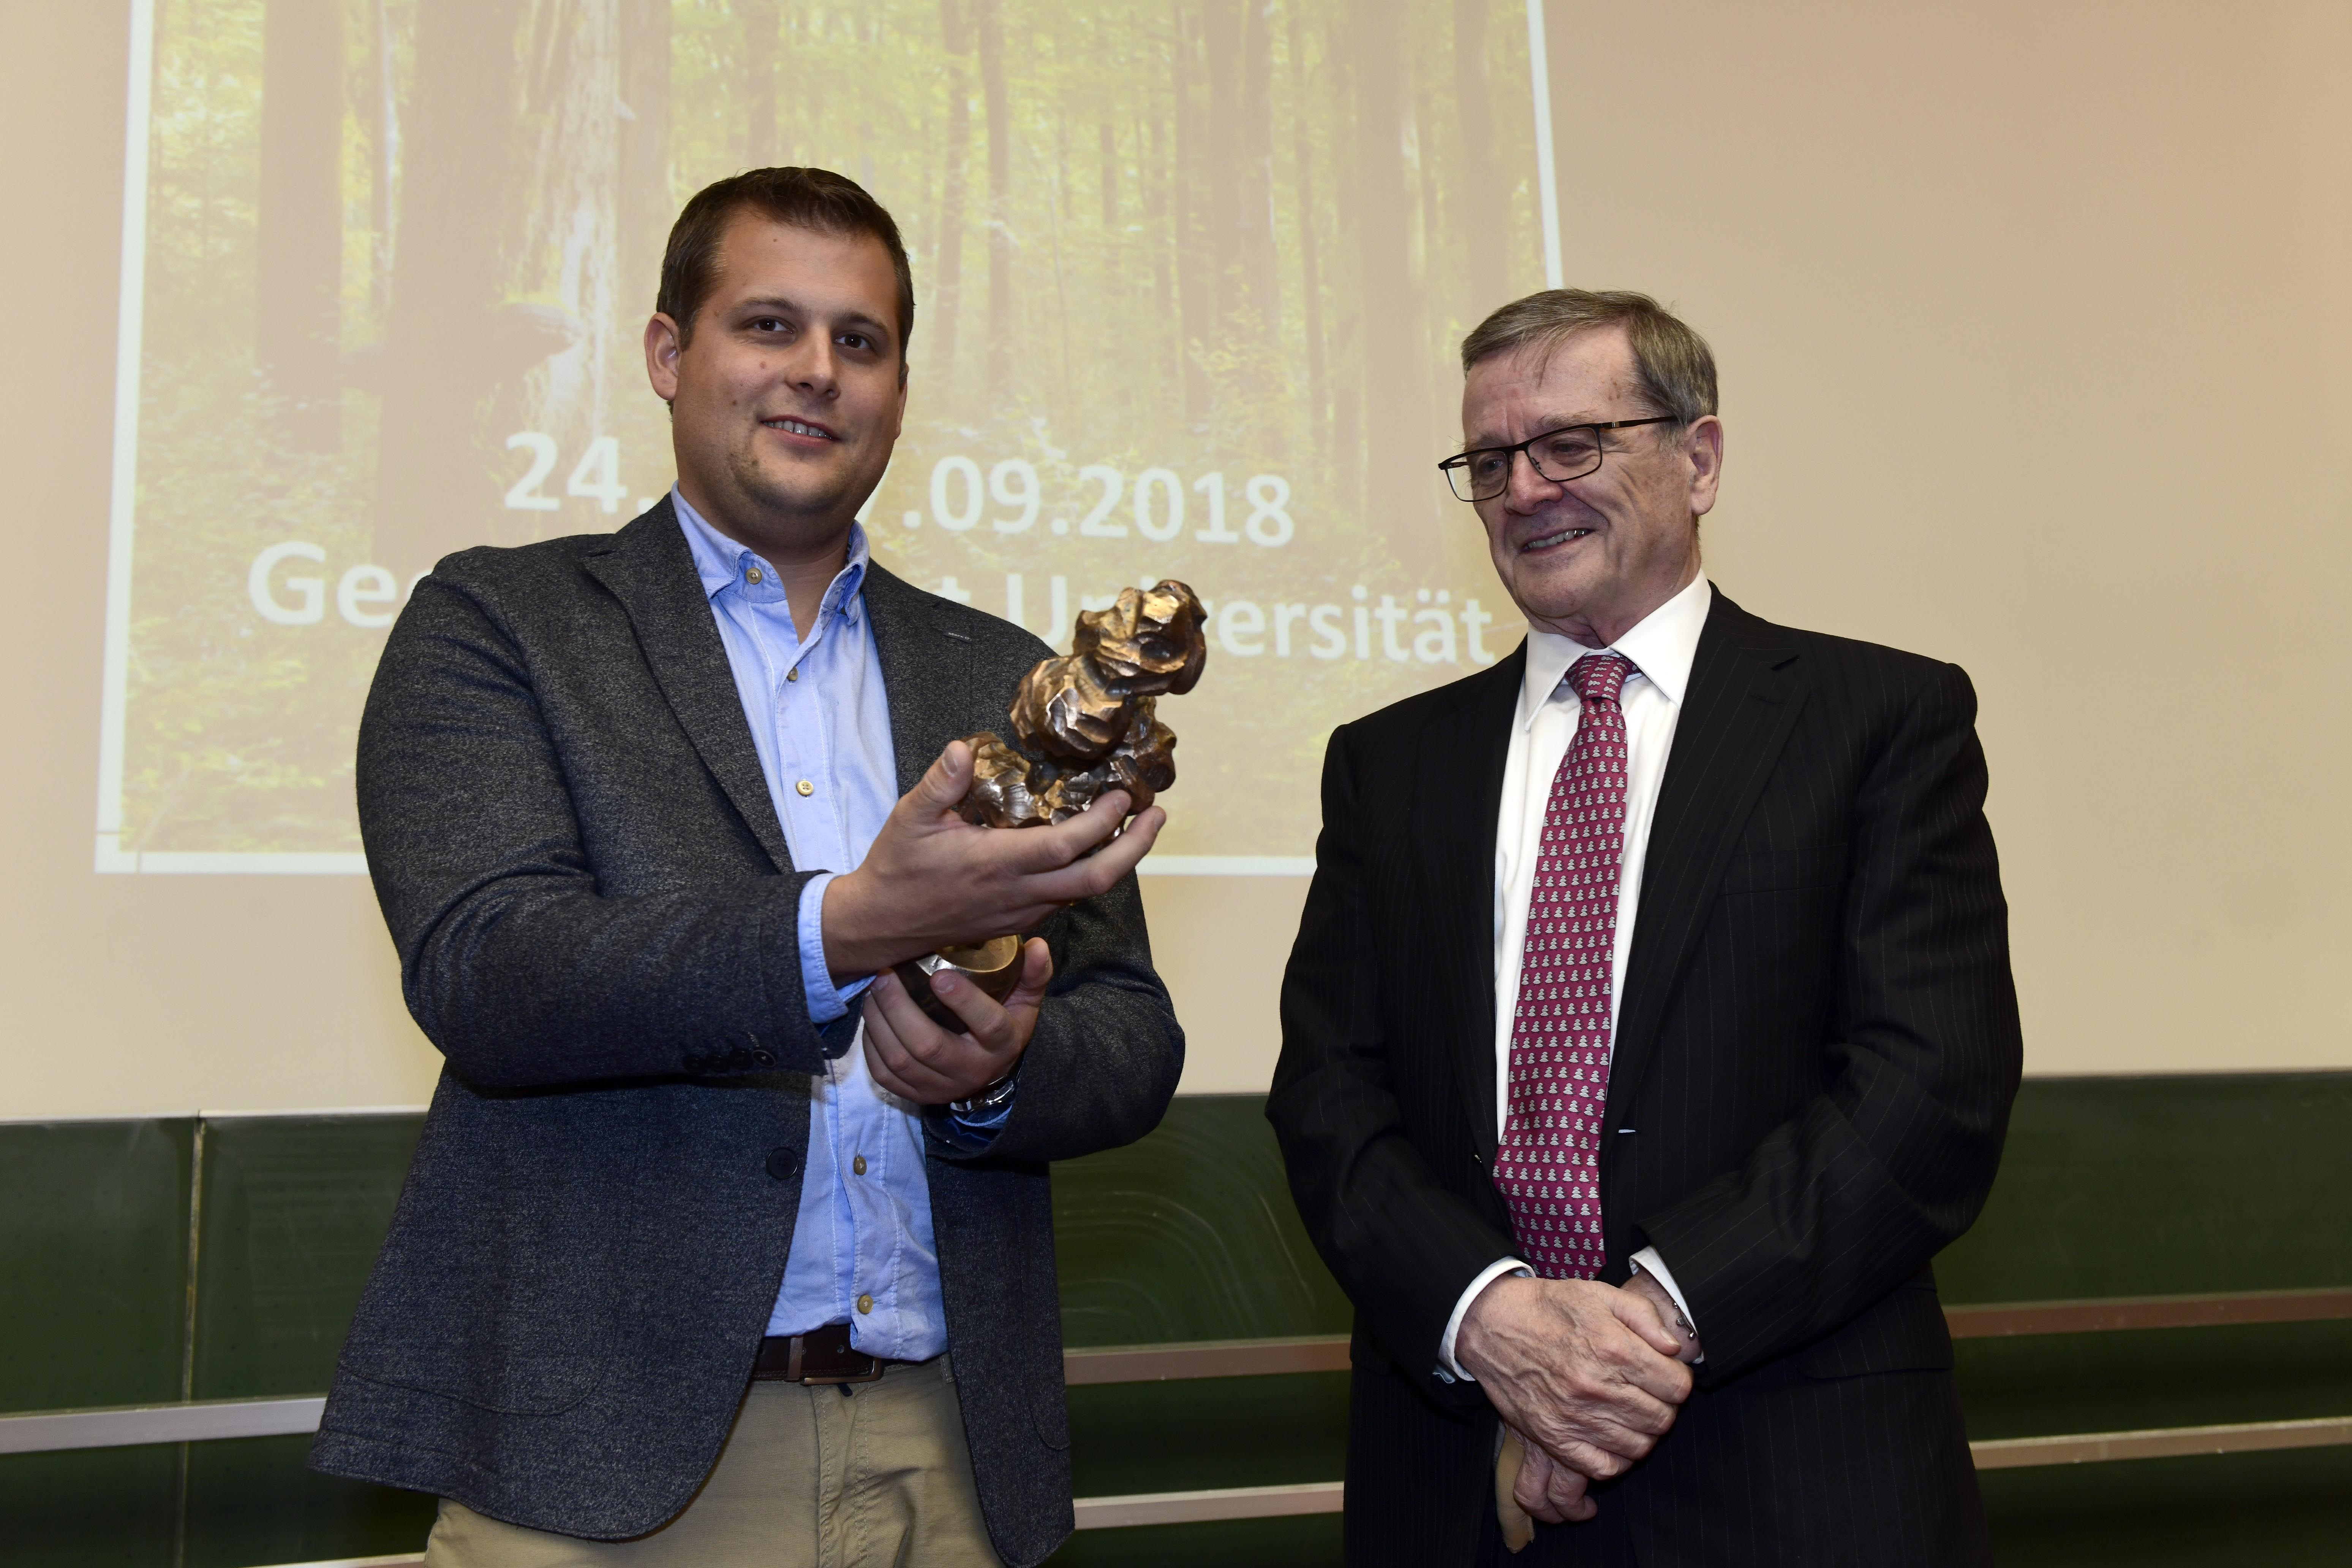 Dr. Dominik Seidel receives the first German Forest Prize Trophy from Robert Mayr.